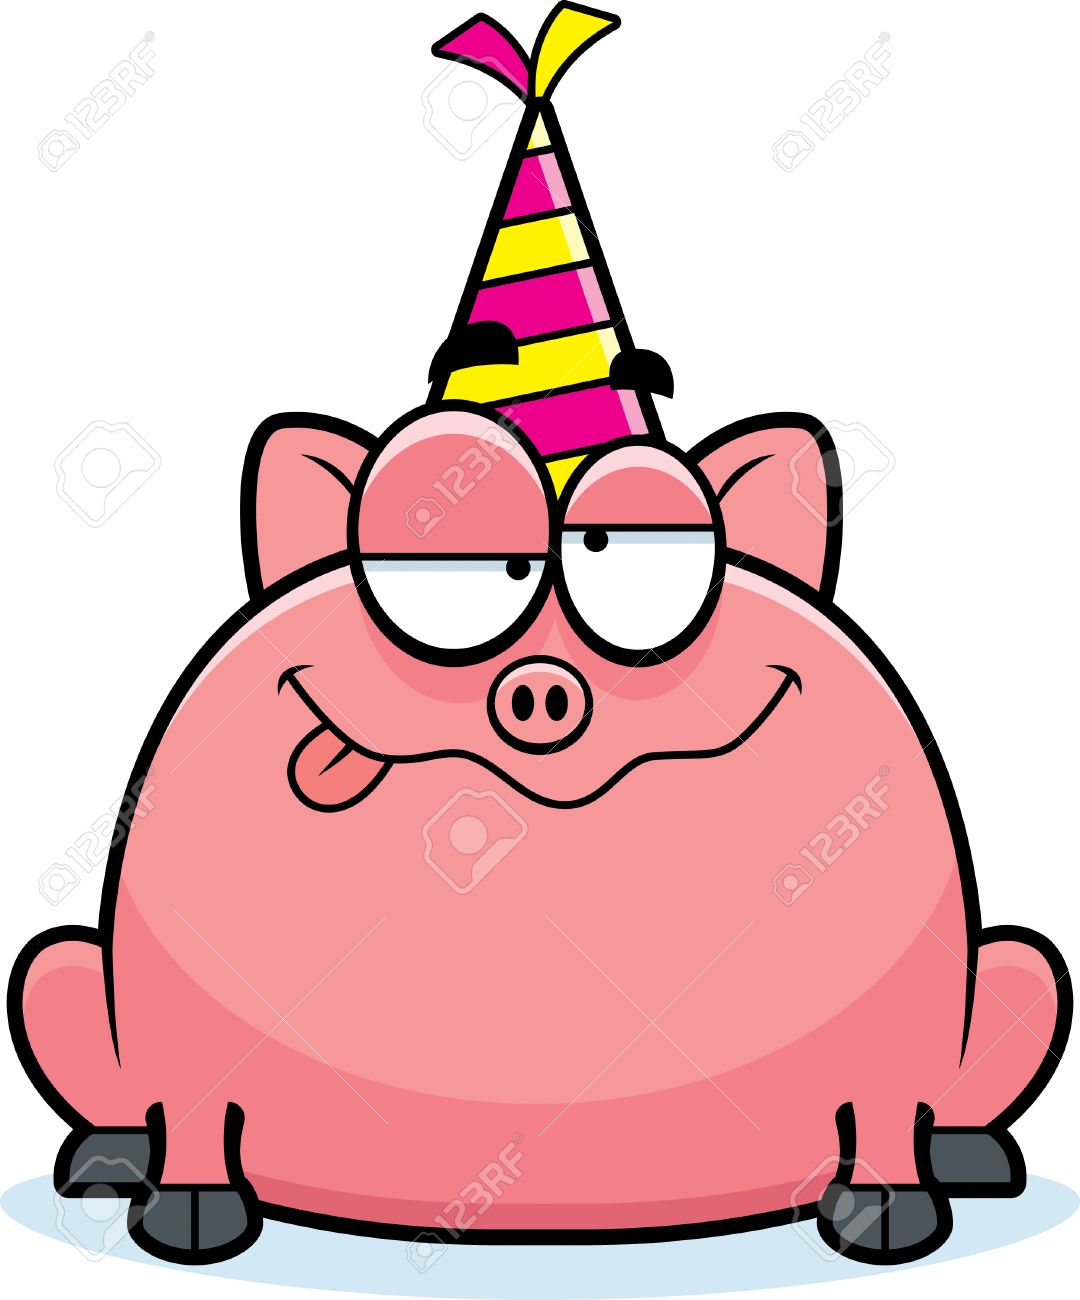 1080x1300 A Cartoon Illustration Of A Little Pig With A Party Hat Looking